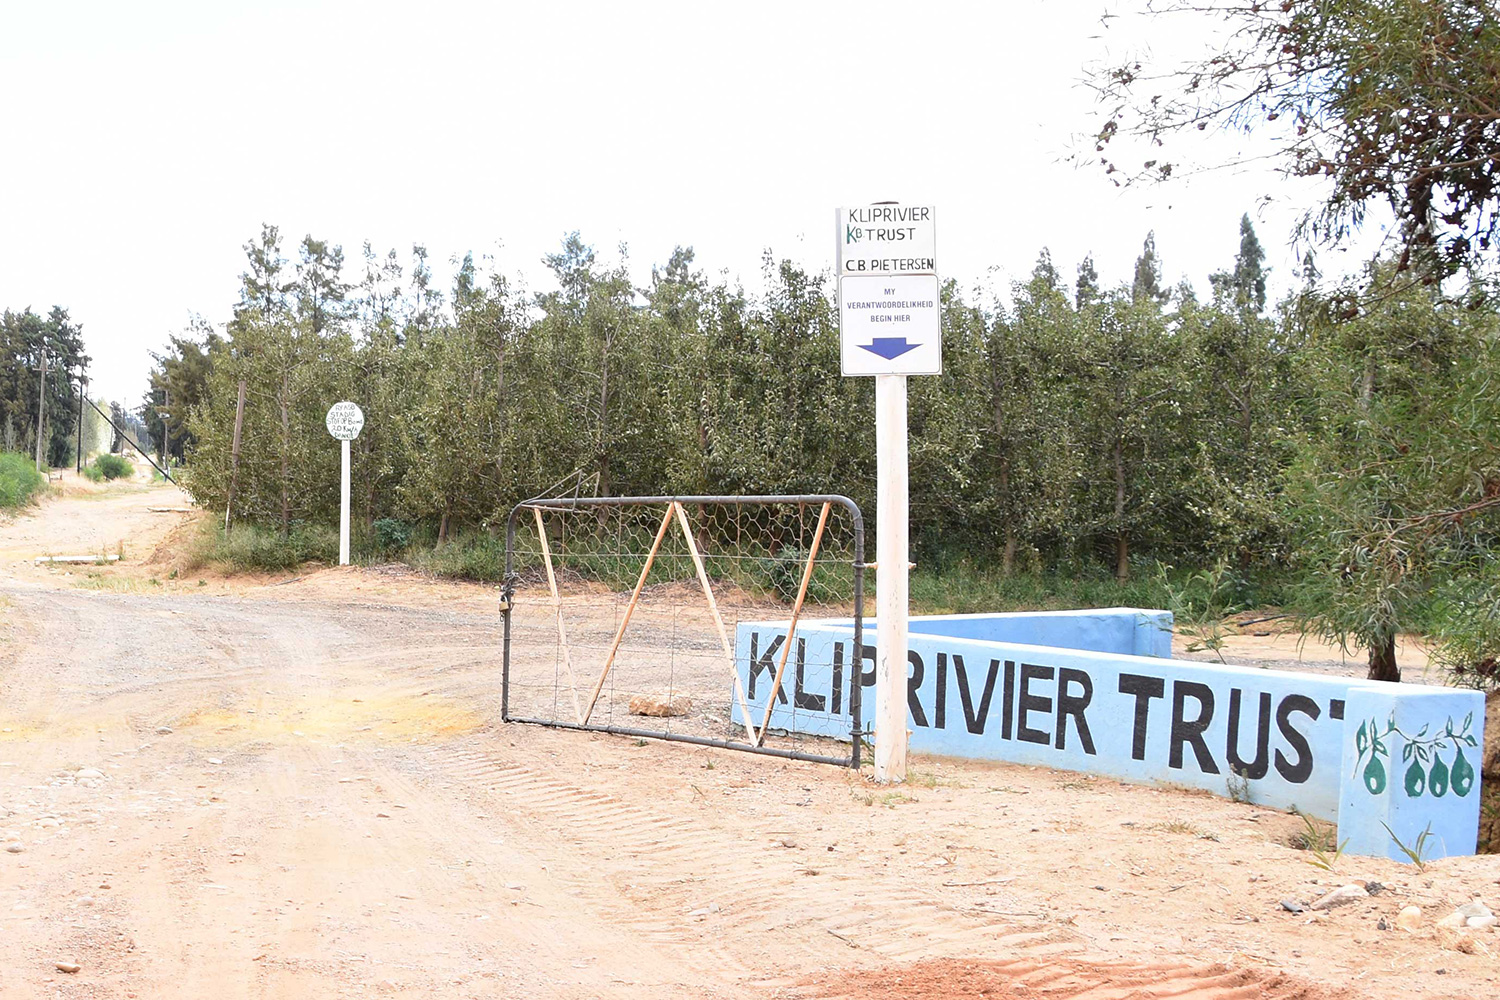 Kliprivier Entrance